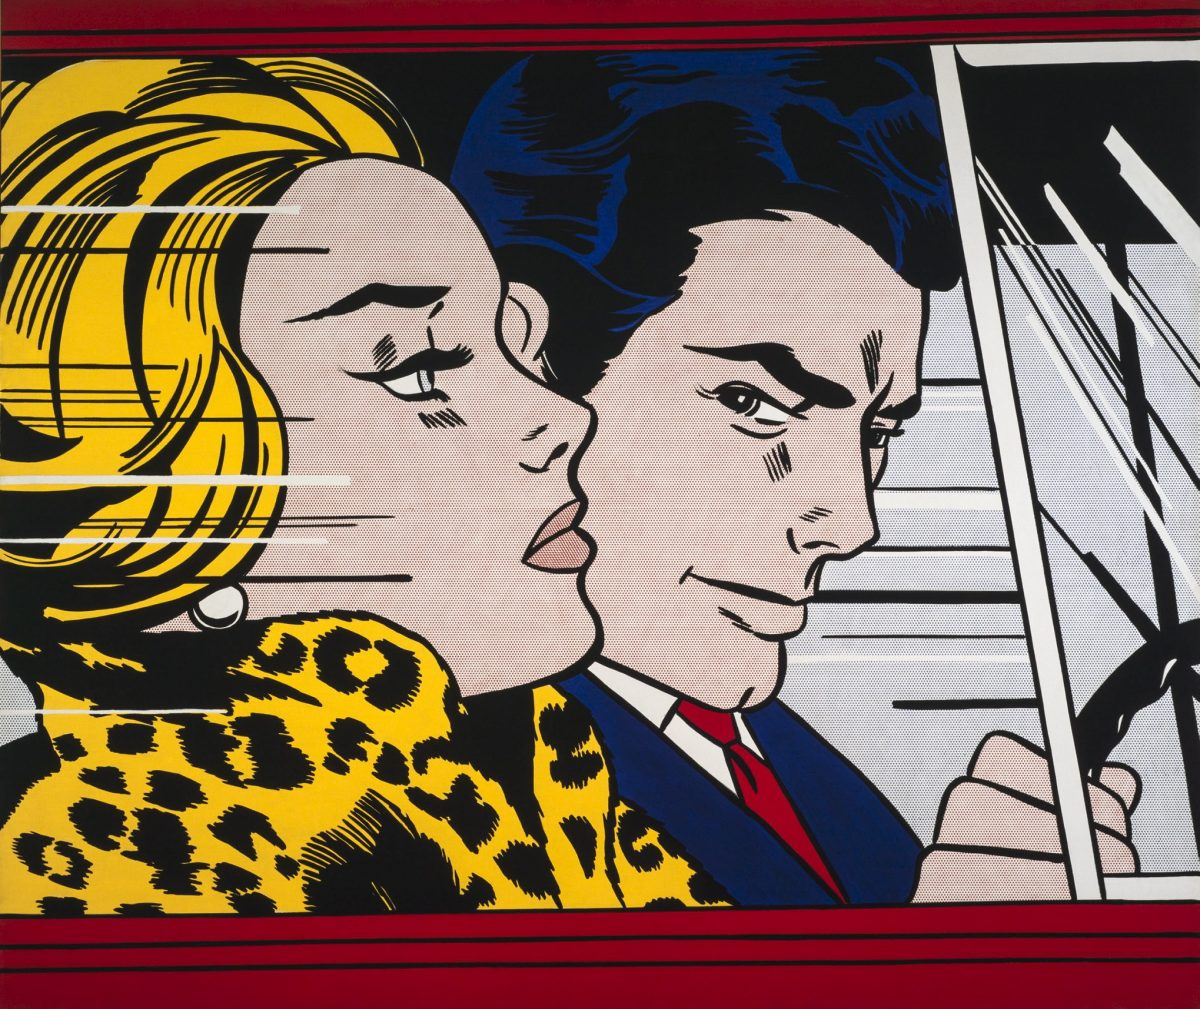 Joana Vasconcelos And Andy Warhol Together For Pure Pop Art joana vasconcelos Joana Vasconcelos And Andy Warhol Together For 'Pure Pop Art' Roy Lichtenstein In the Car 1963 e1562594721548